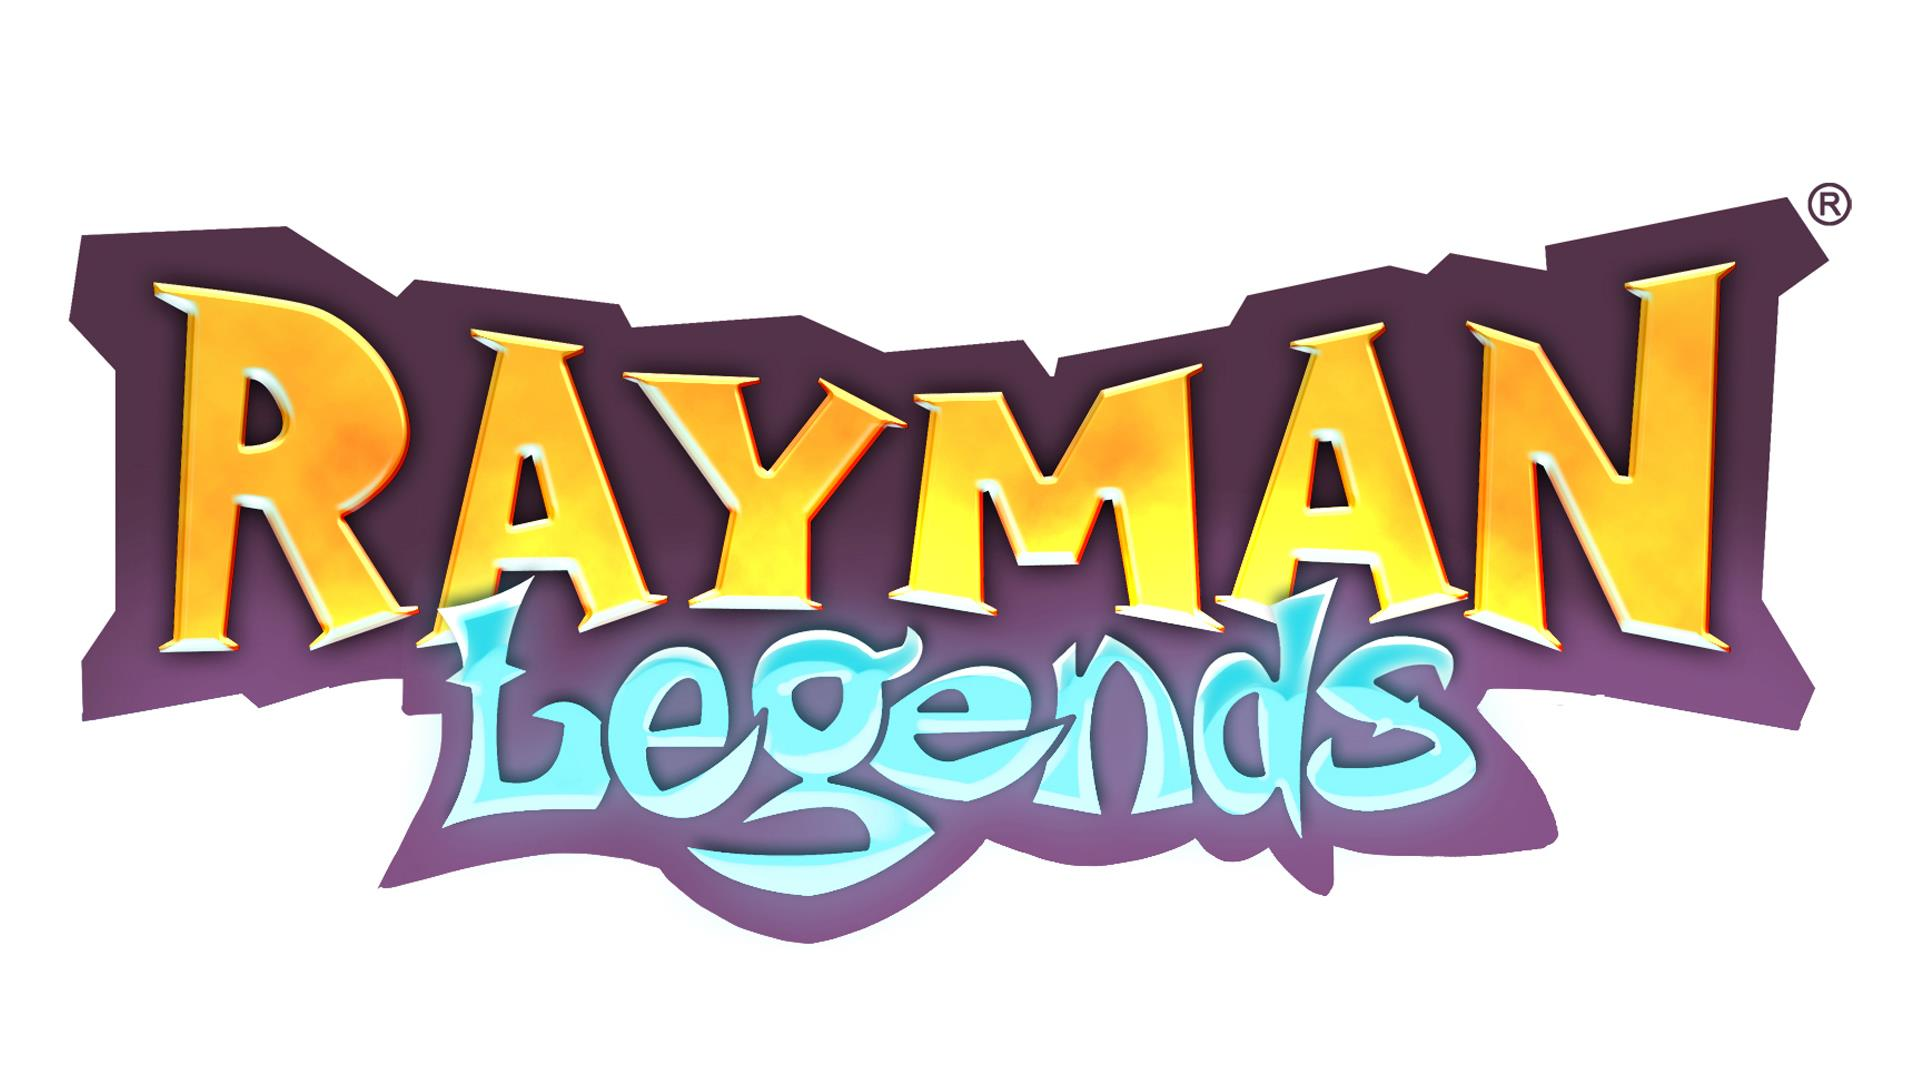 Rayman Legends Wallpaper 1920x1080